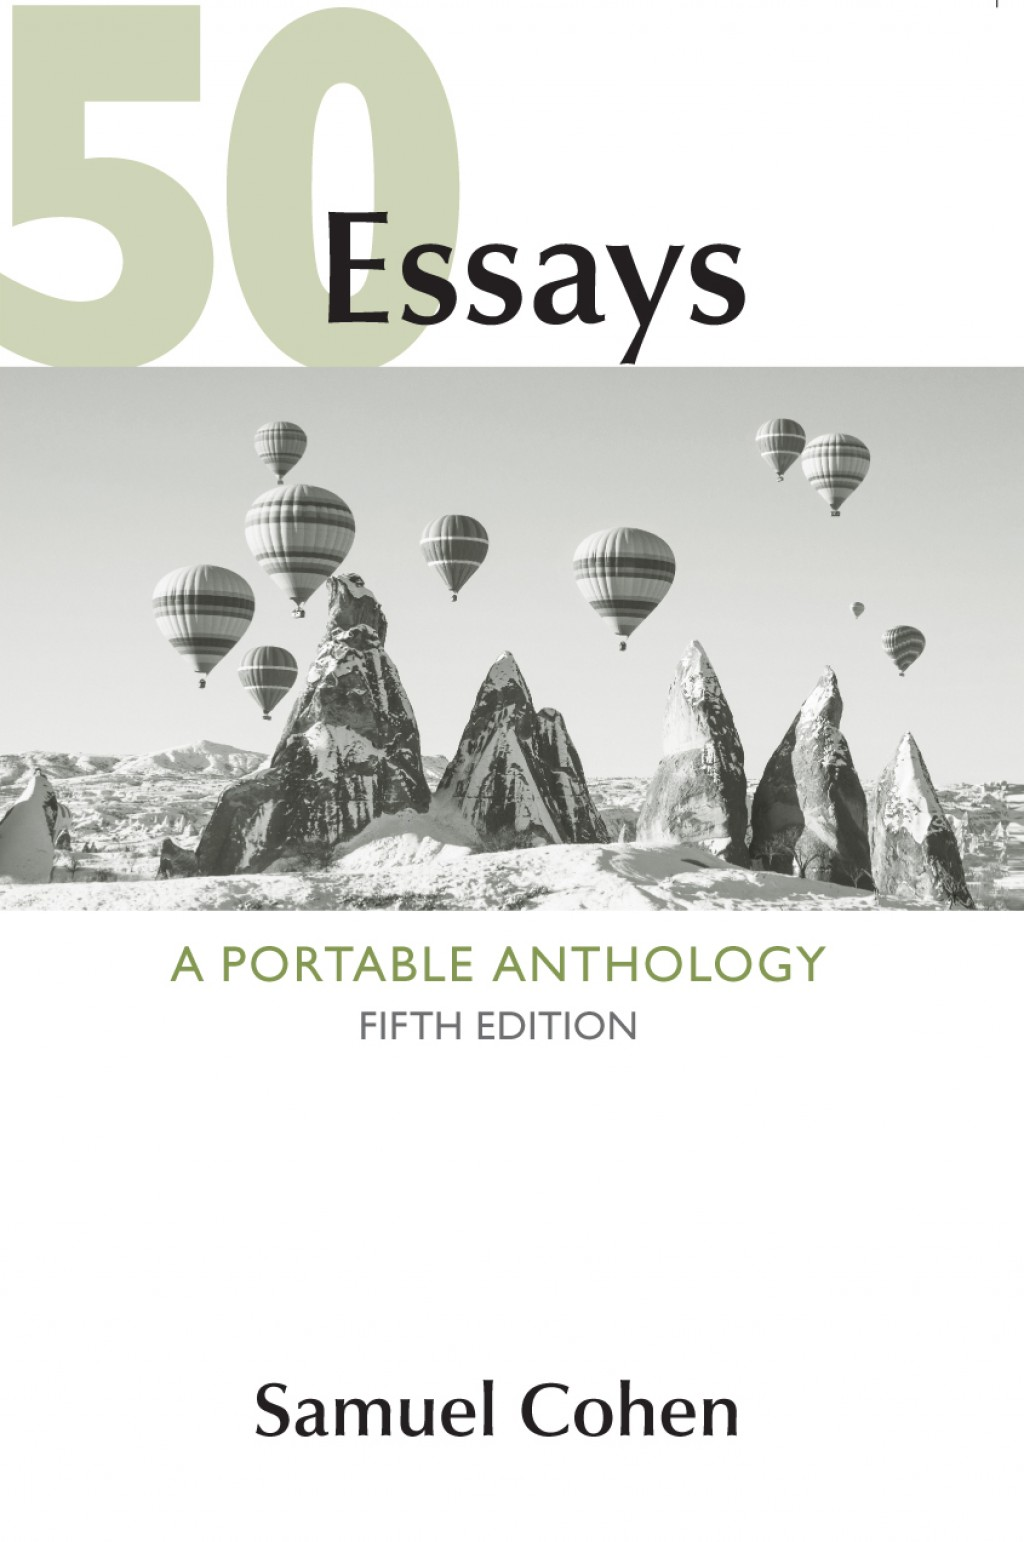 014 Essays 4th Edition Essay Phenomenal 50 Successful Harvard Application Pdf A Portable Anthology Answers Free Large